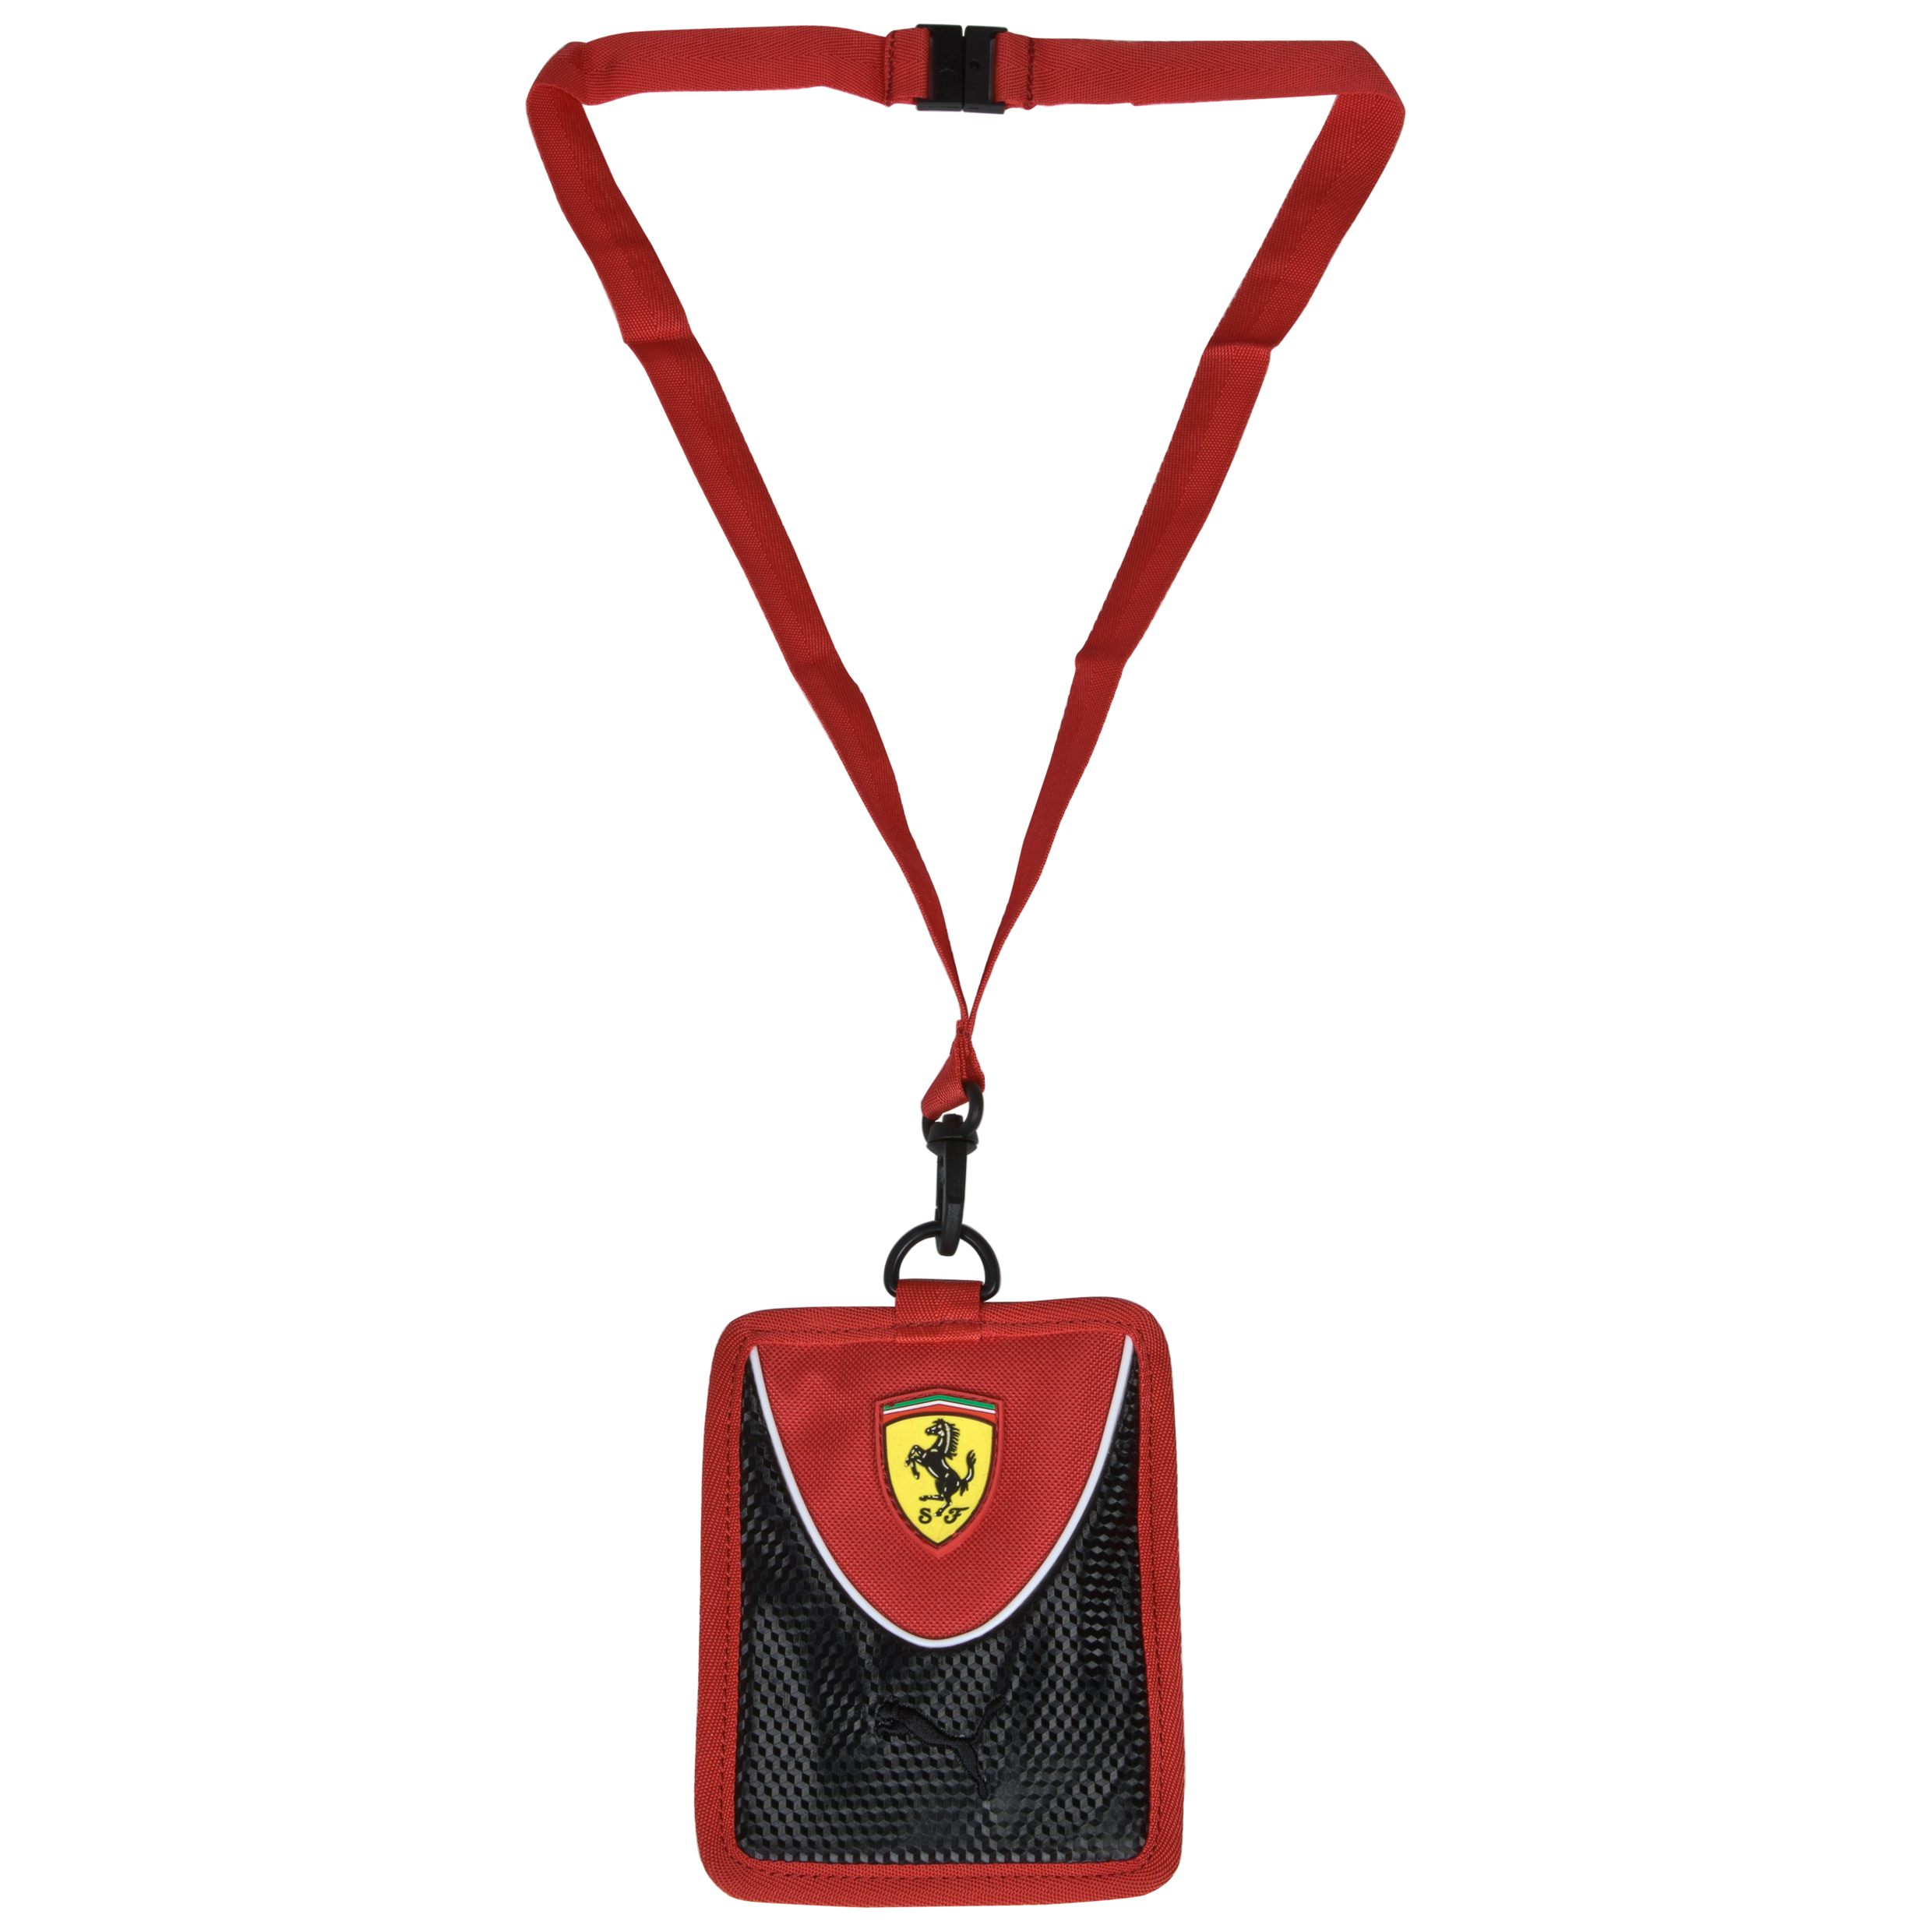 Scuderia Ferrari Card Holder - Rosso Corsa/Black